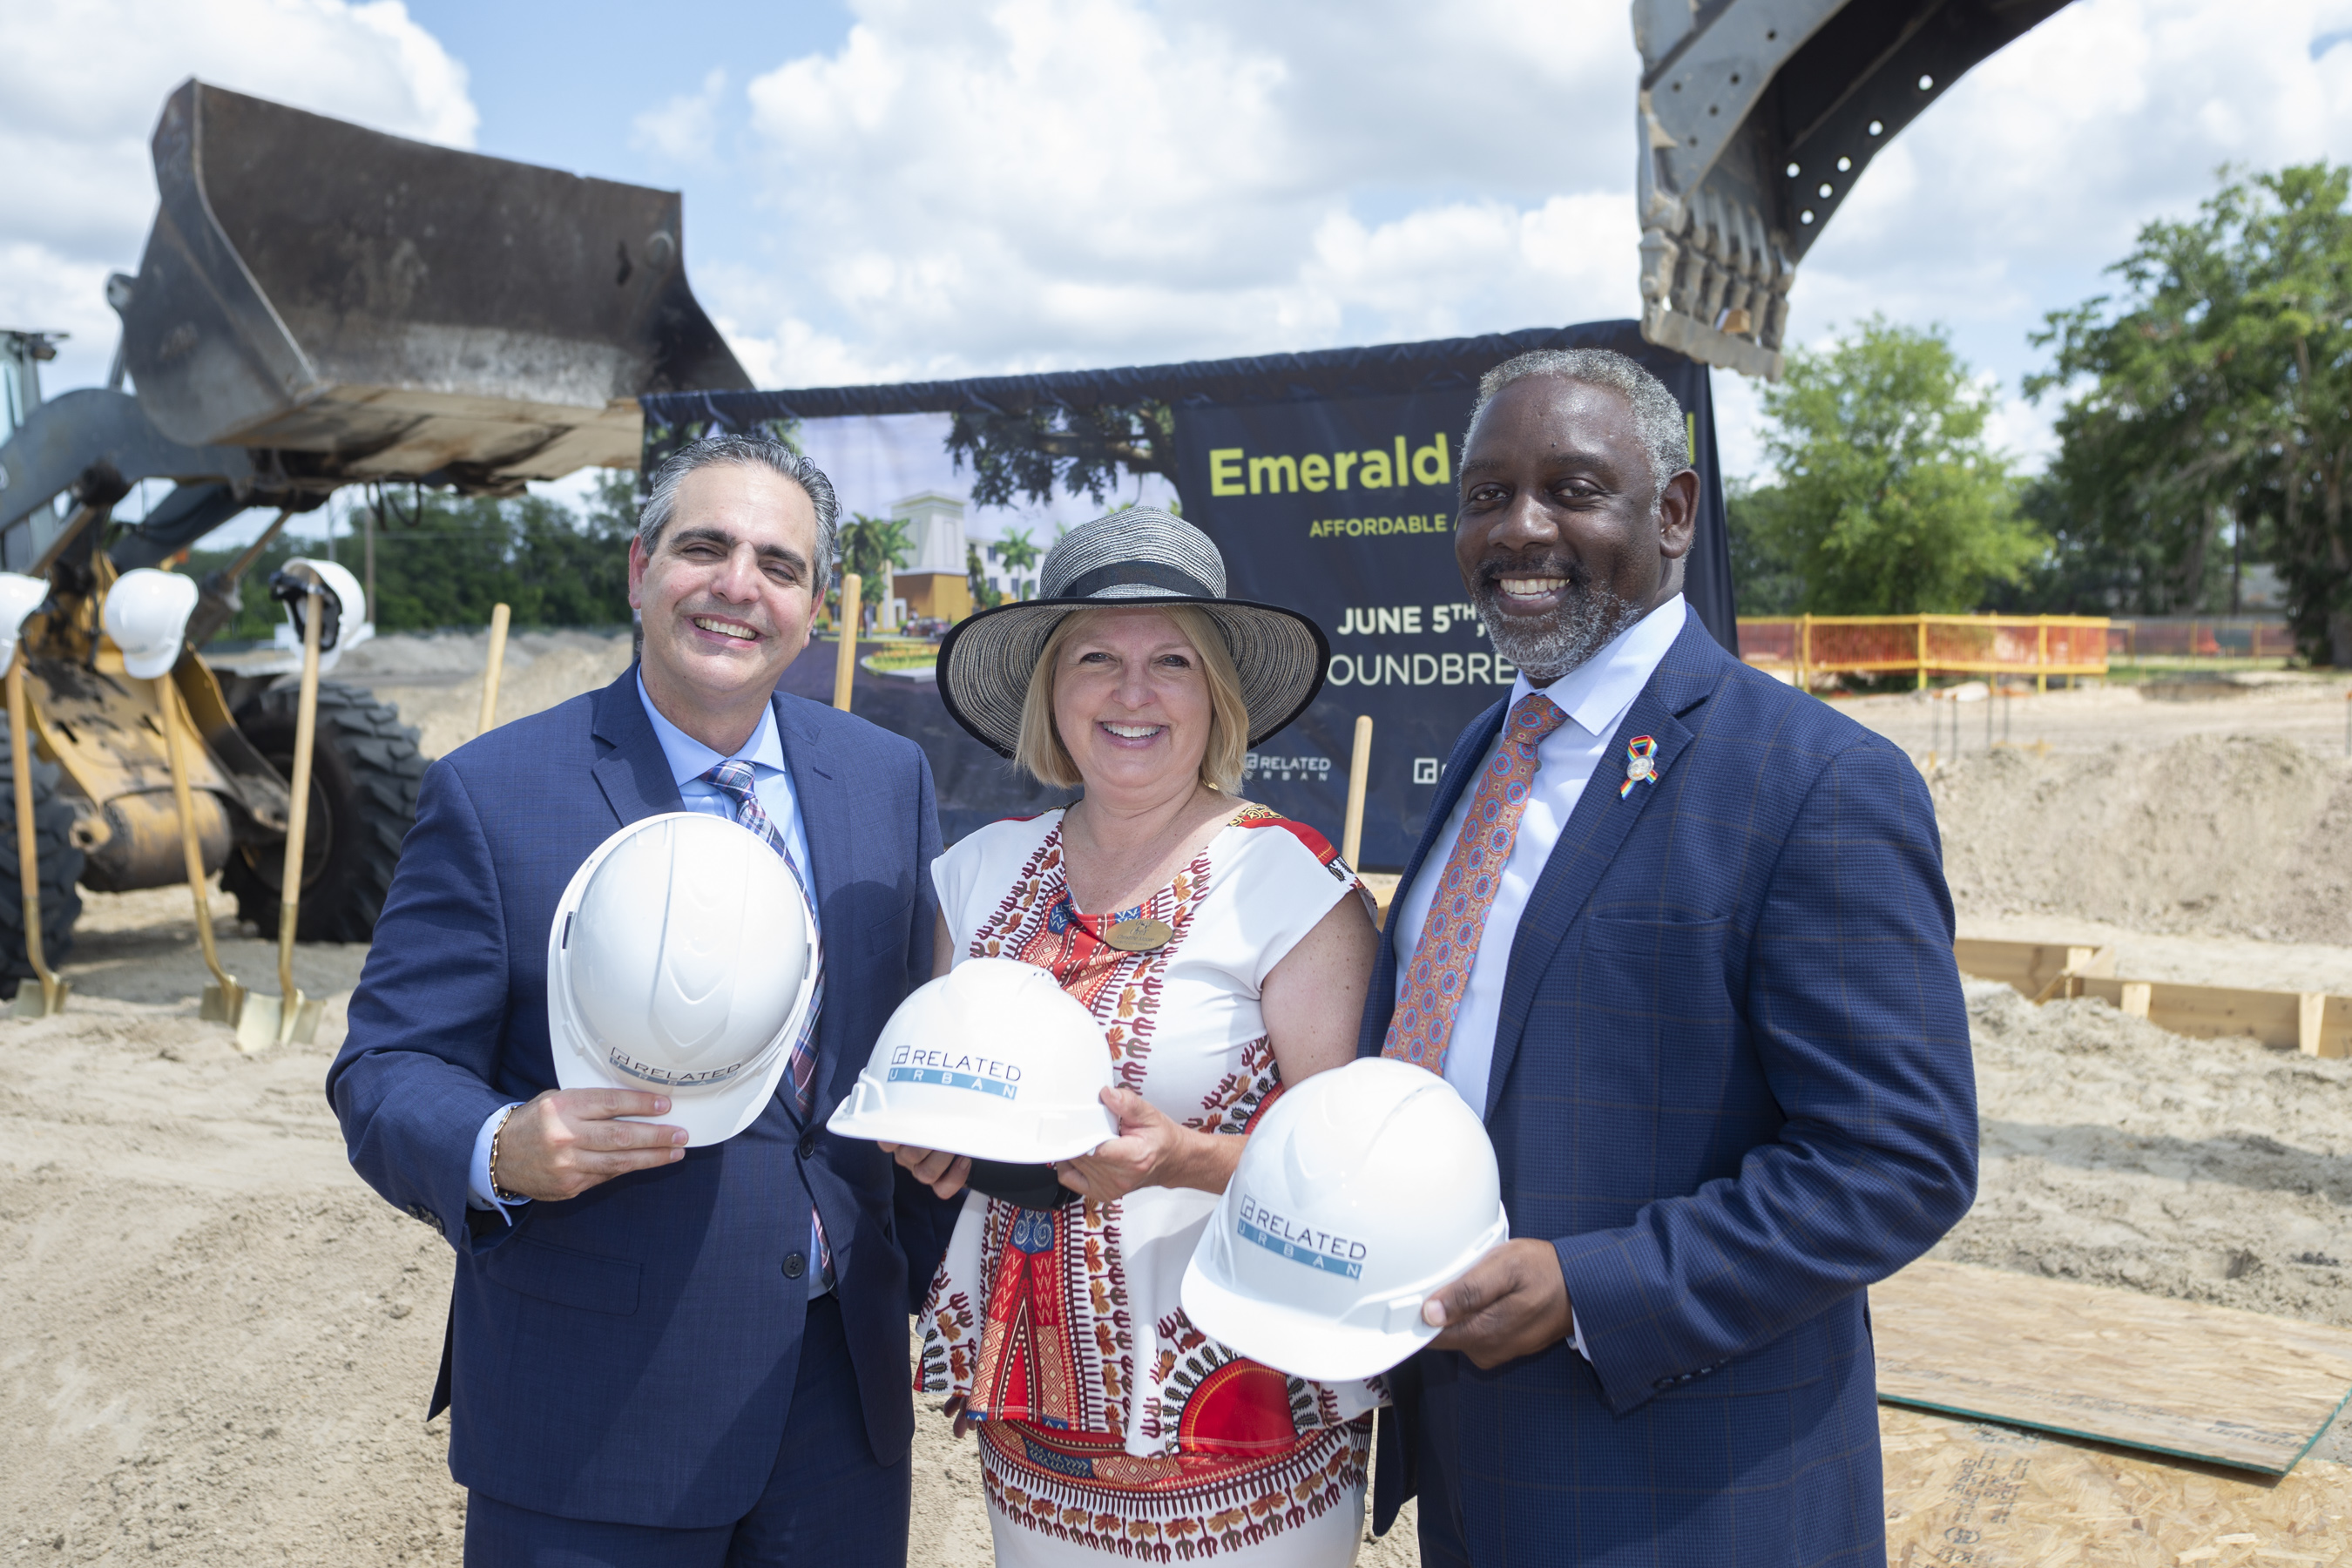 Three people holding hard hats at a groundbreaking outside.